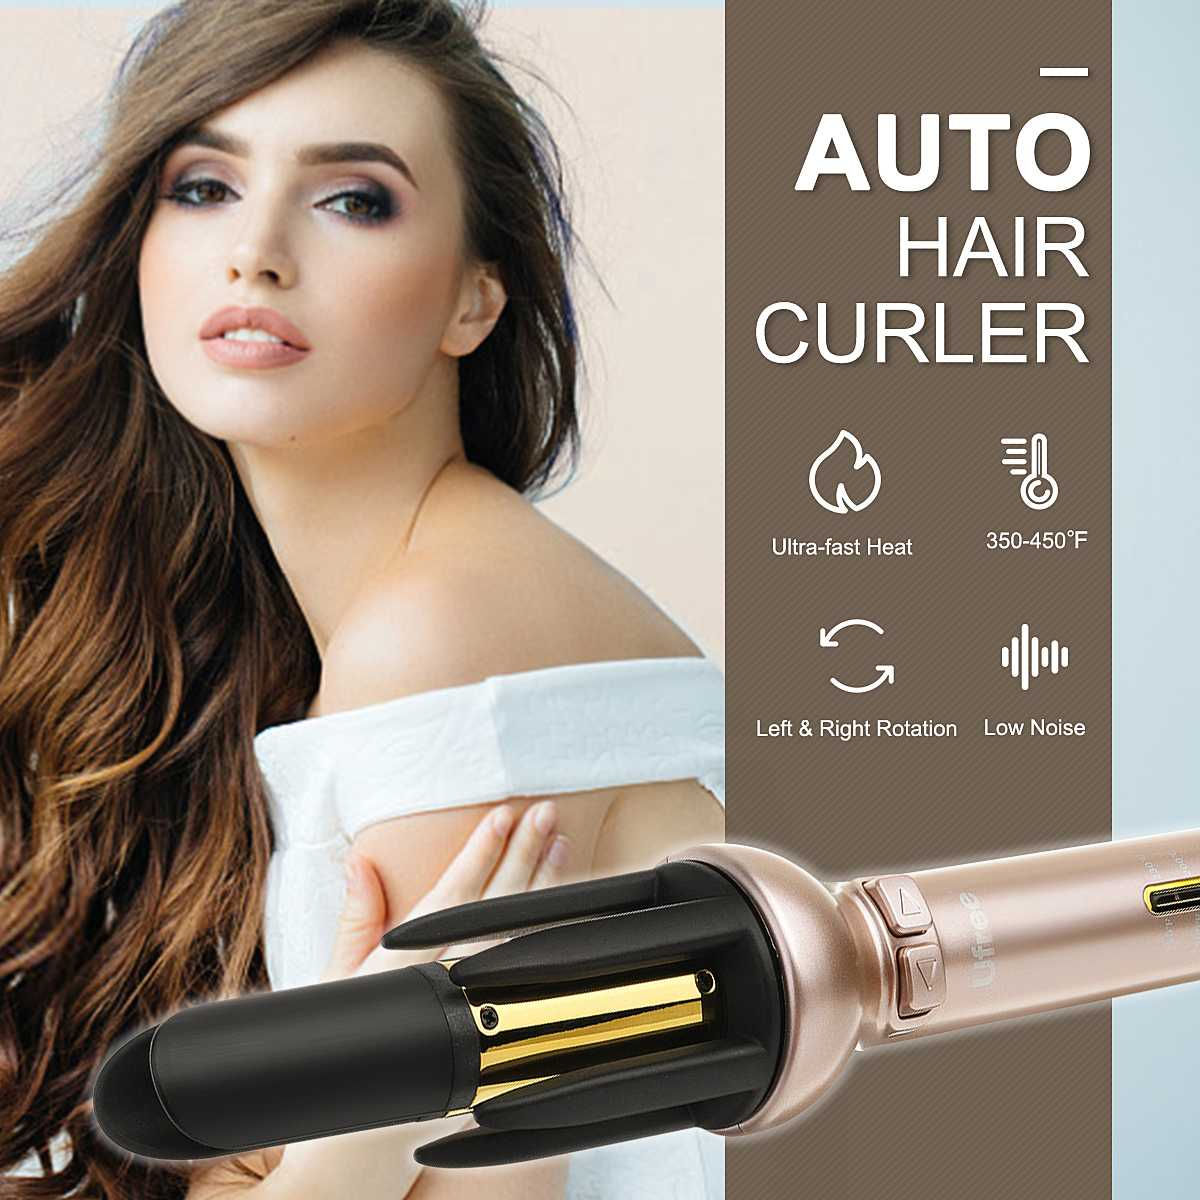 EU/US Plug Professional Automatic Ceramic Hair Curler 100-240V 32W Wave Hair Curling Styling Iron Styler Fast Heating StylingEU/US Plug Professional Automatic Ceramic Hair Curler 100-240V 32W Wave Hair Curling Styling Iron Styler Fast Heating Styling